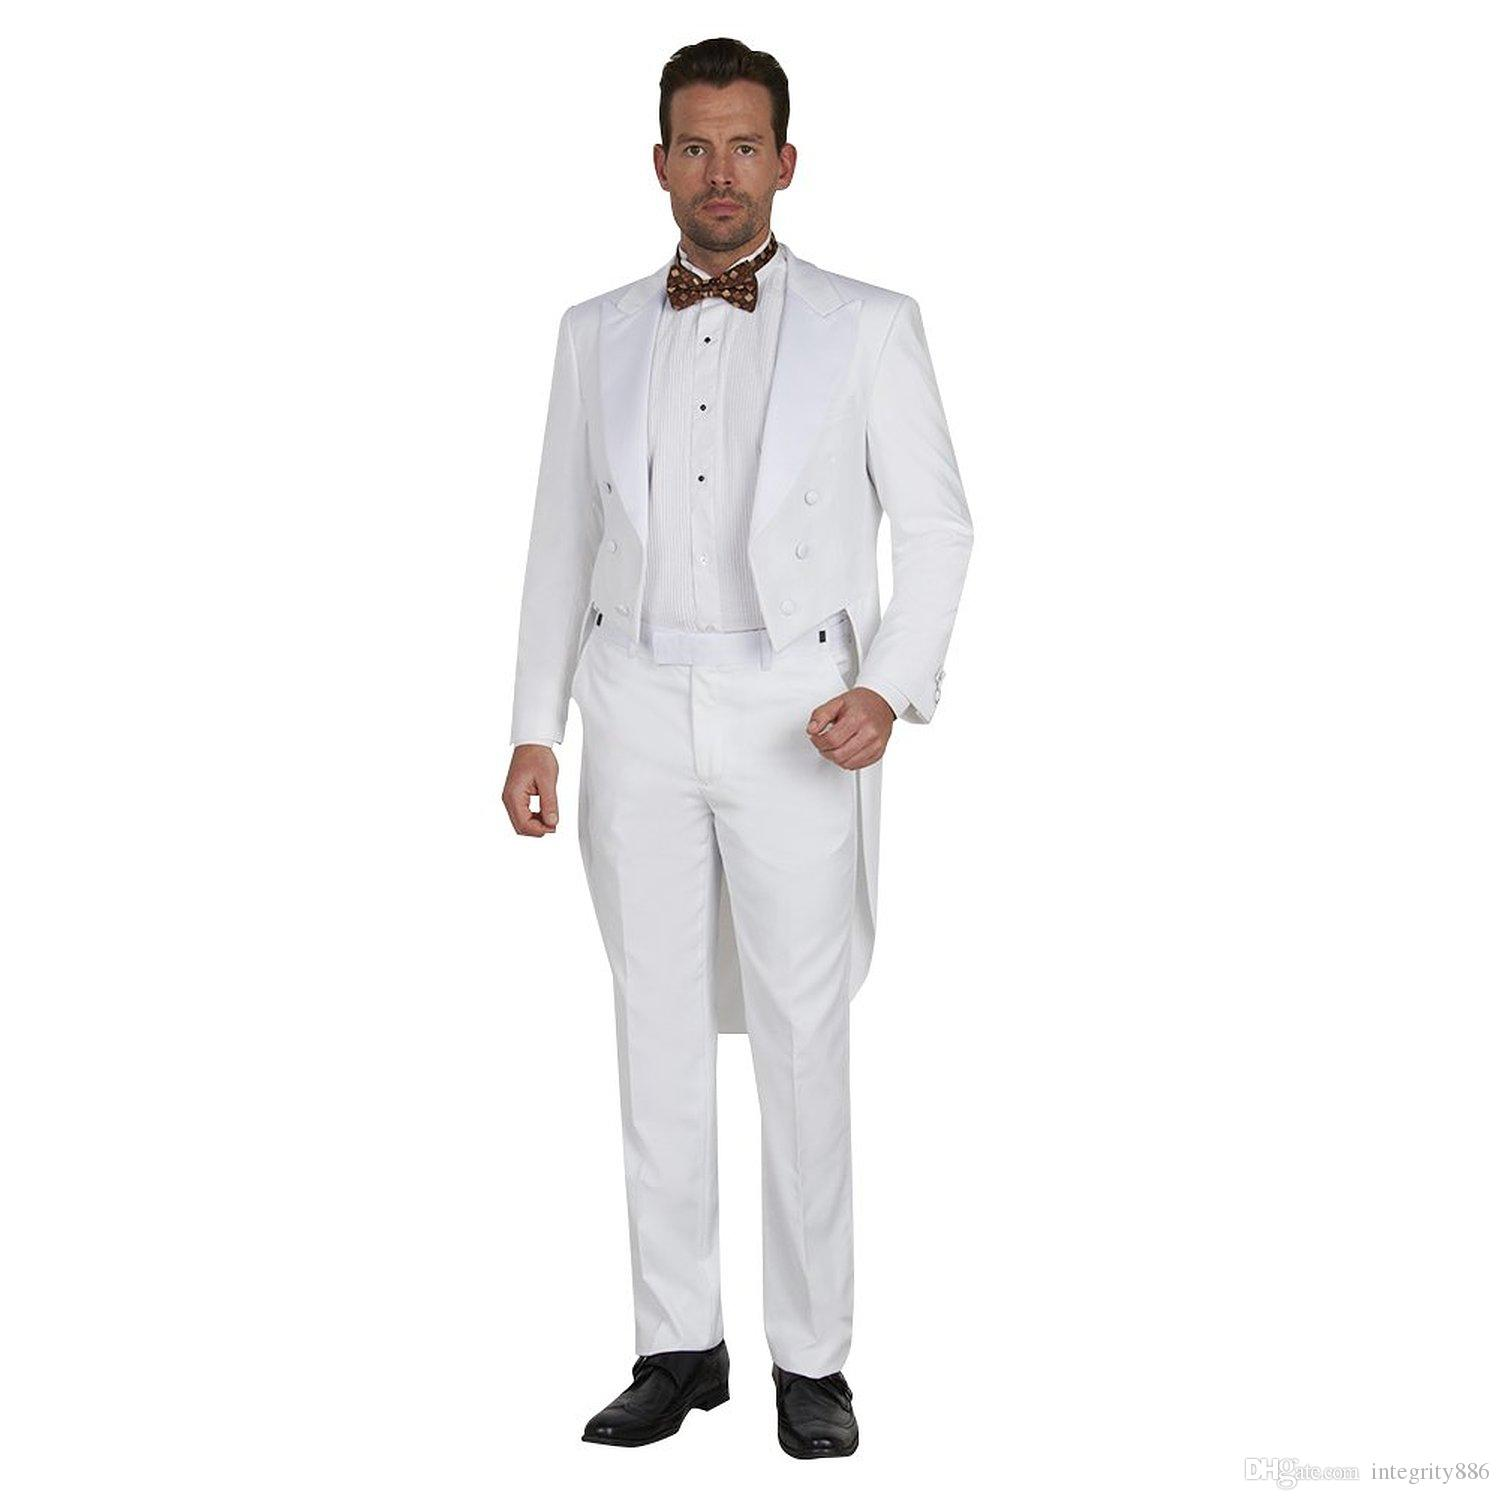 Fashion White Tailcoat Men Wedding Tuxedos Double-Breasted Center Vent Groom Tuxedos Men Formal Dinner Prom Suit(Jacket+Pants+Tie+Girdle)691